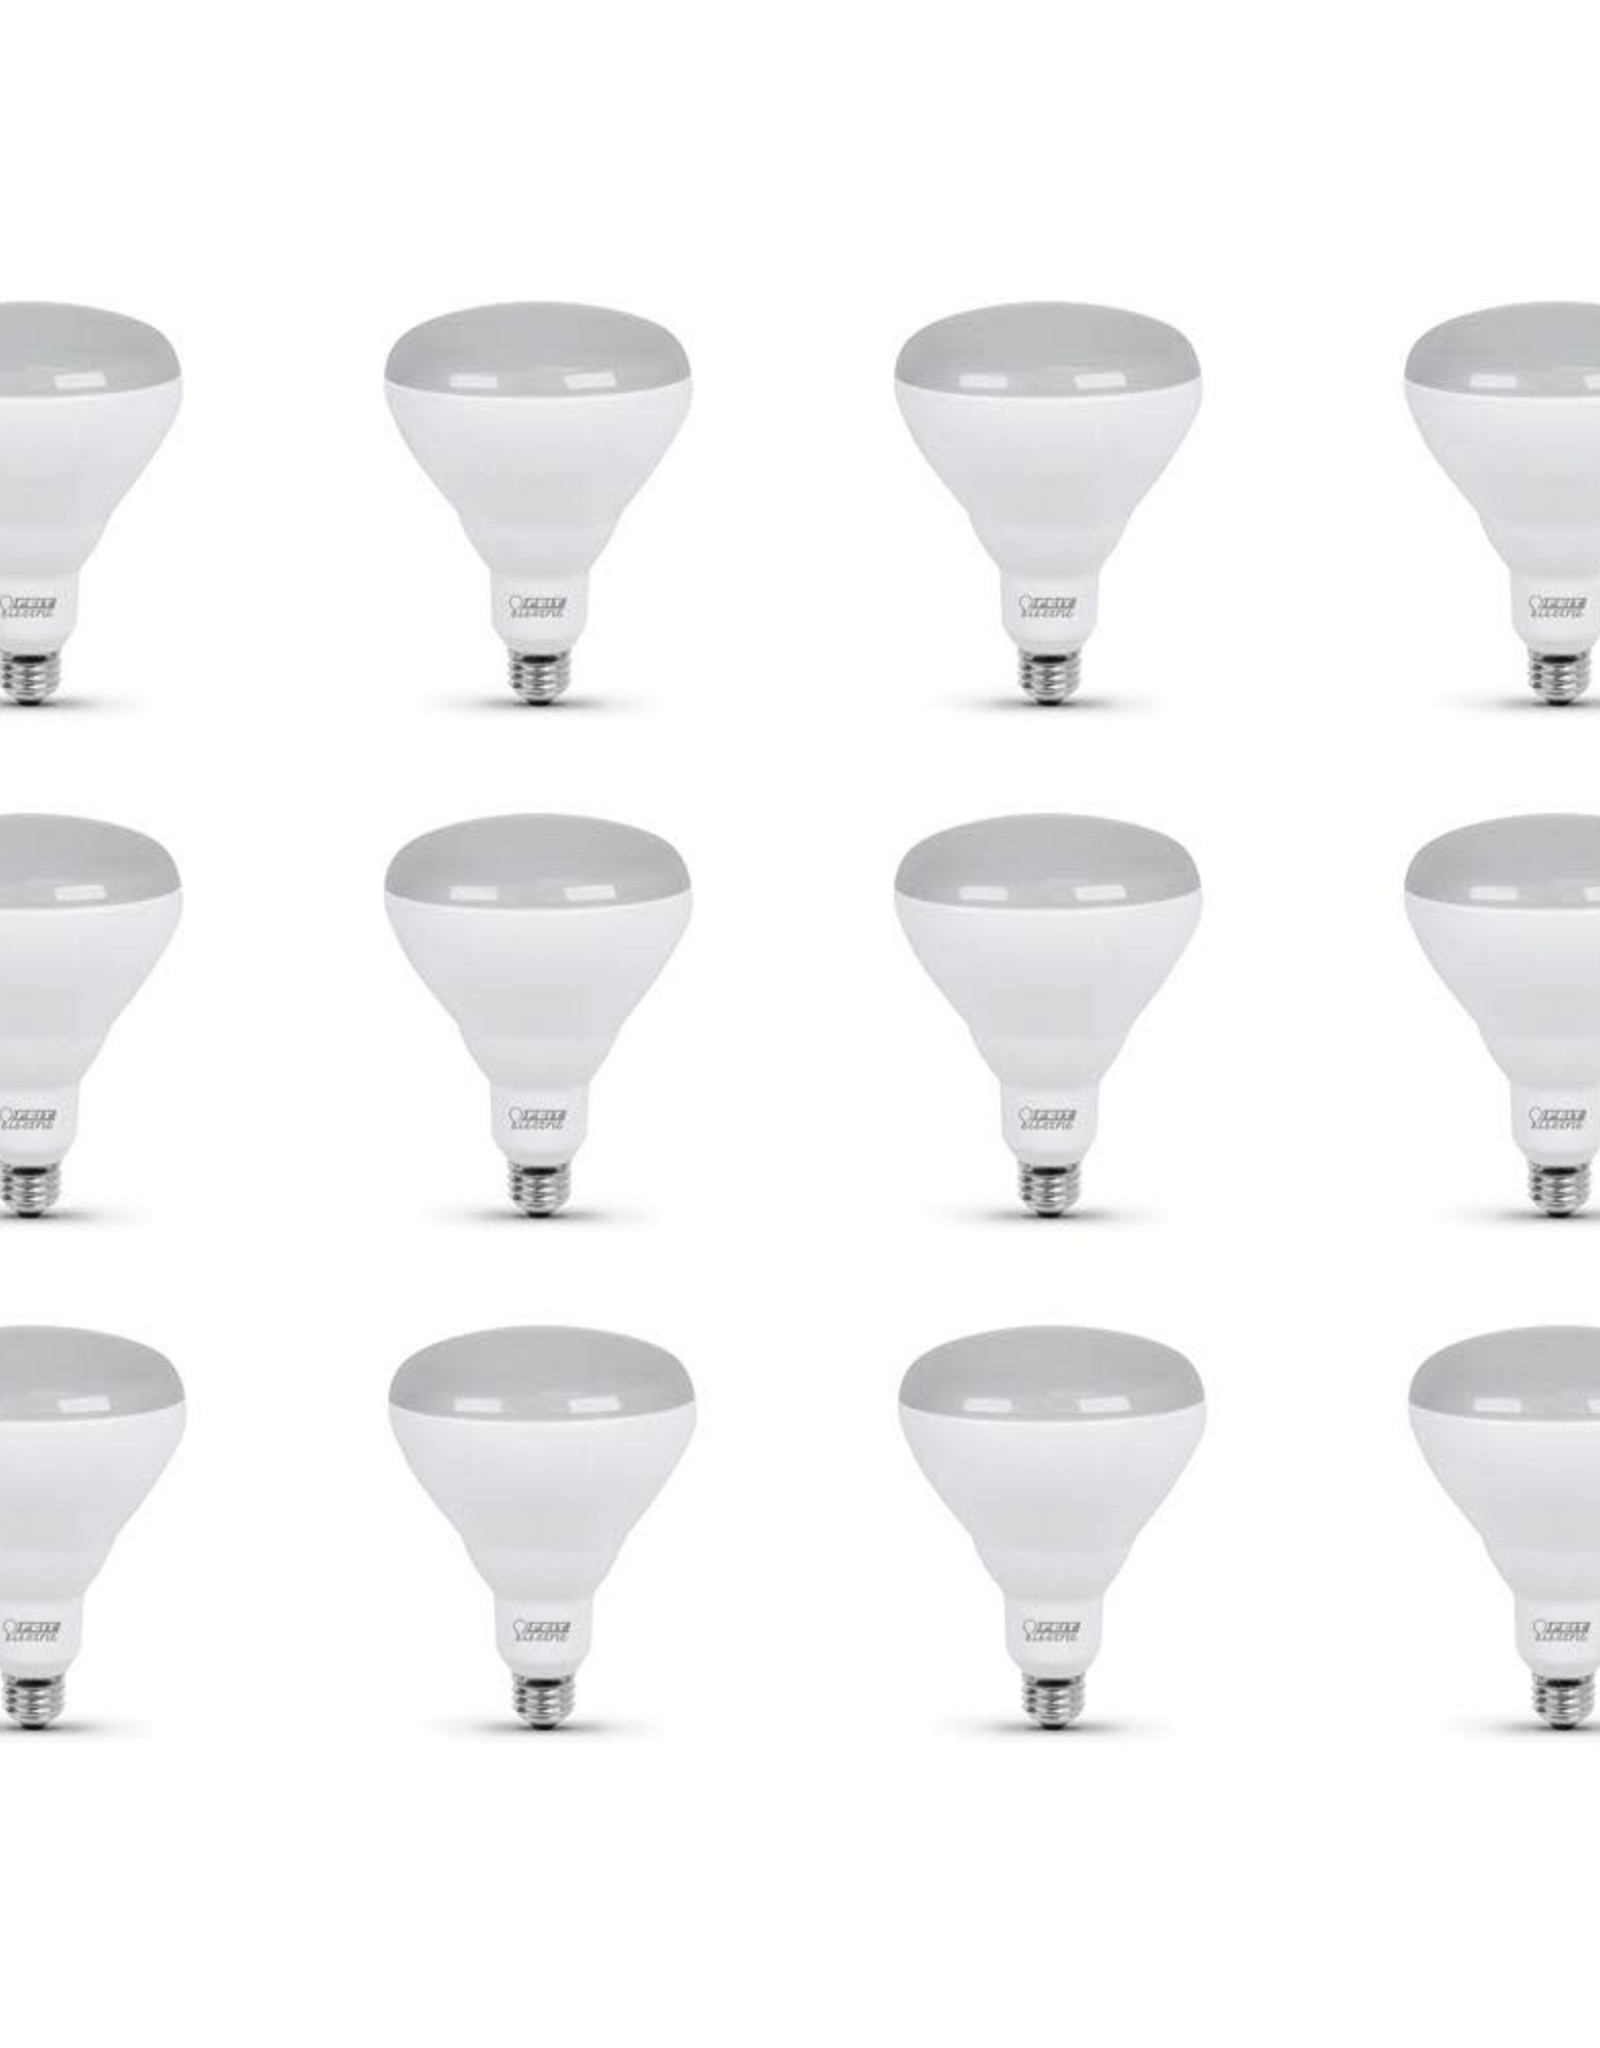 Feit Electric 65-Watt Equivalent BR40 Dimmable CEC ENERGY STAR Enhance 90+ CRI Recessed Flood LED Light Bulb, Bright White (12-Pack)